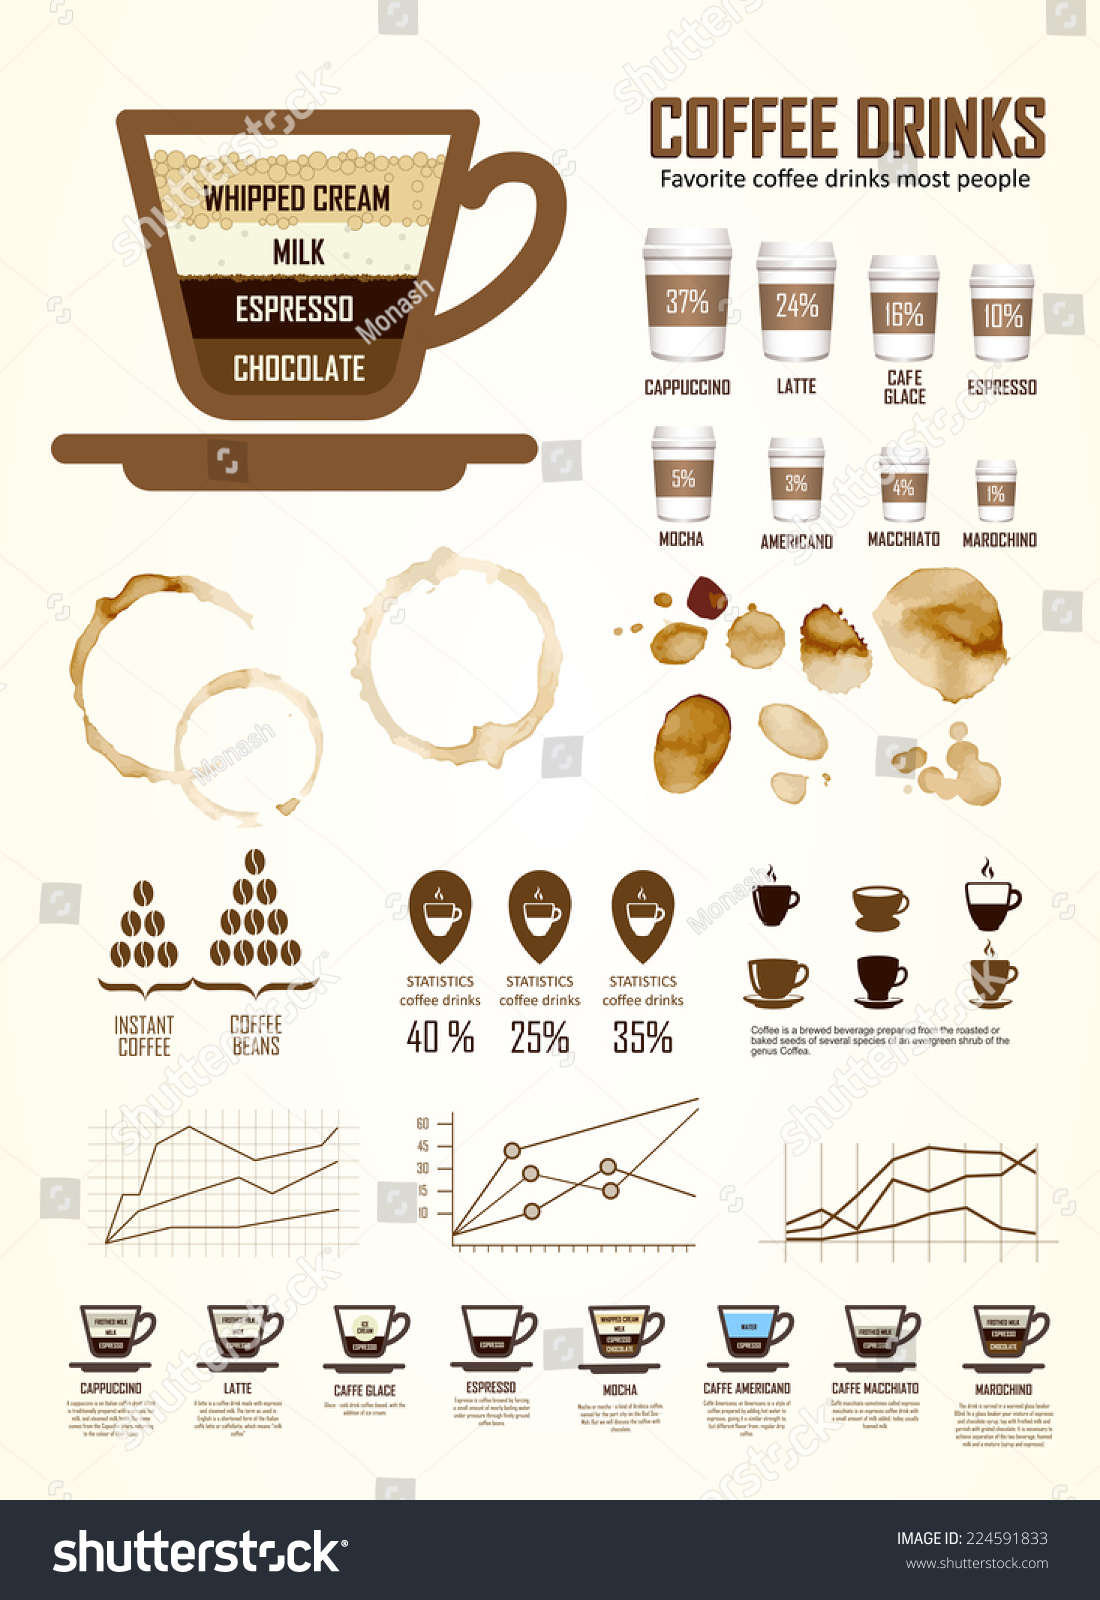 percentage of adults who drink coffee